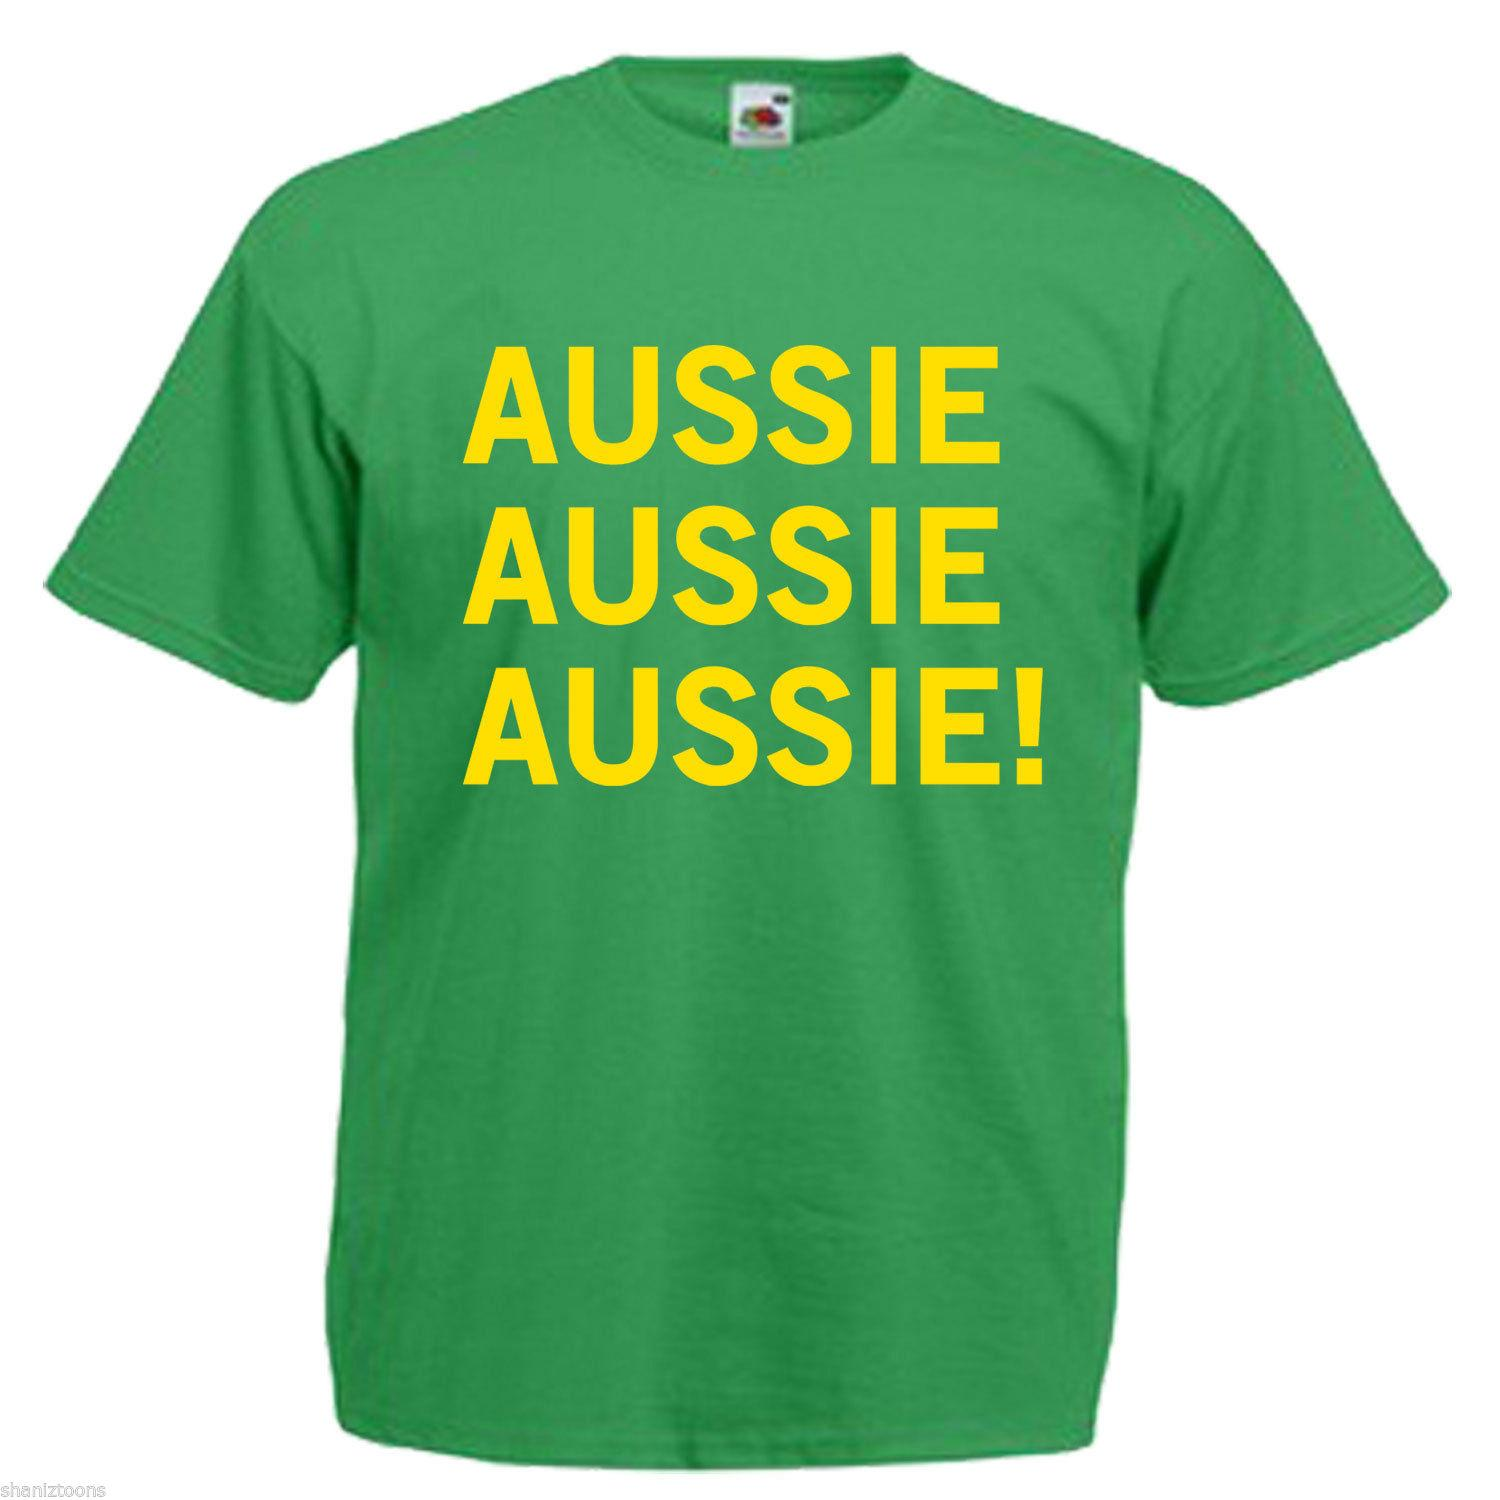 Details Zu Australia Day Australian Slogan Adults Mens T Shirt Funny Unisex  Casual Gift Canada 2018 From Lukehappy13 14bc4968d